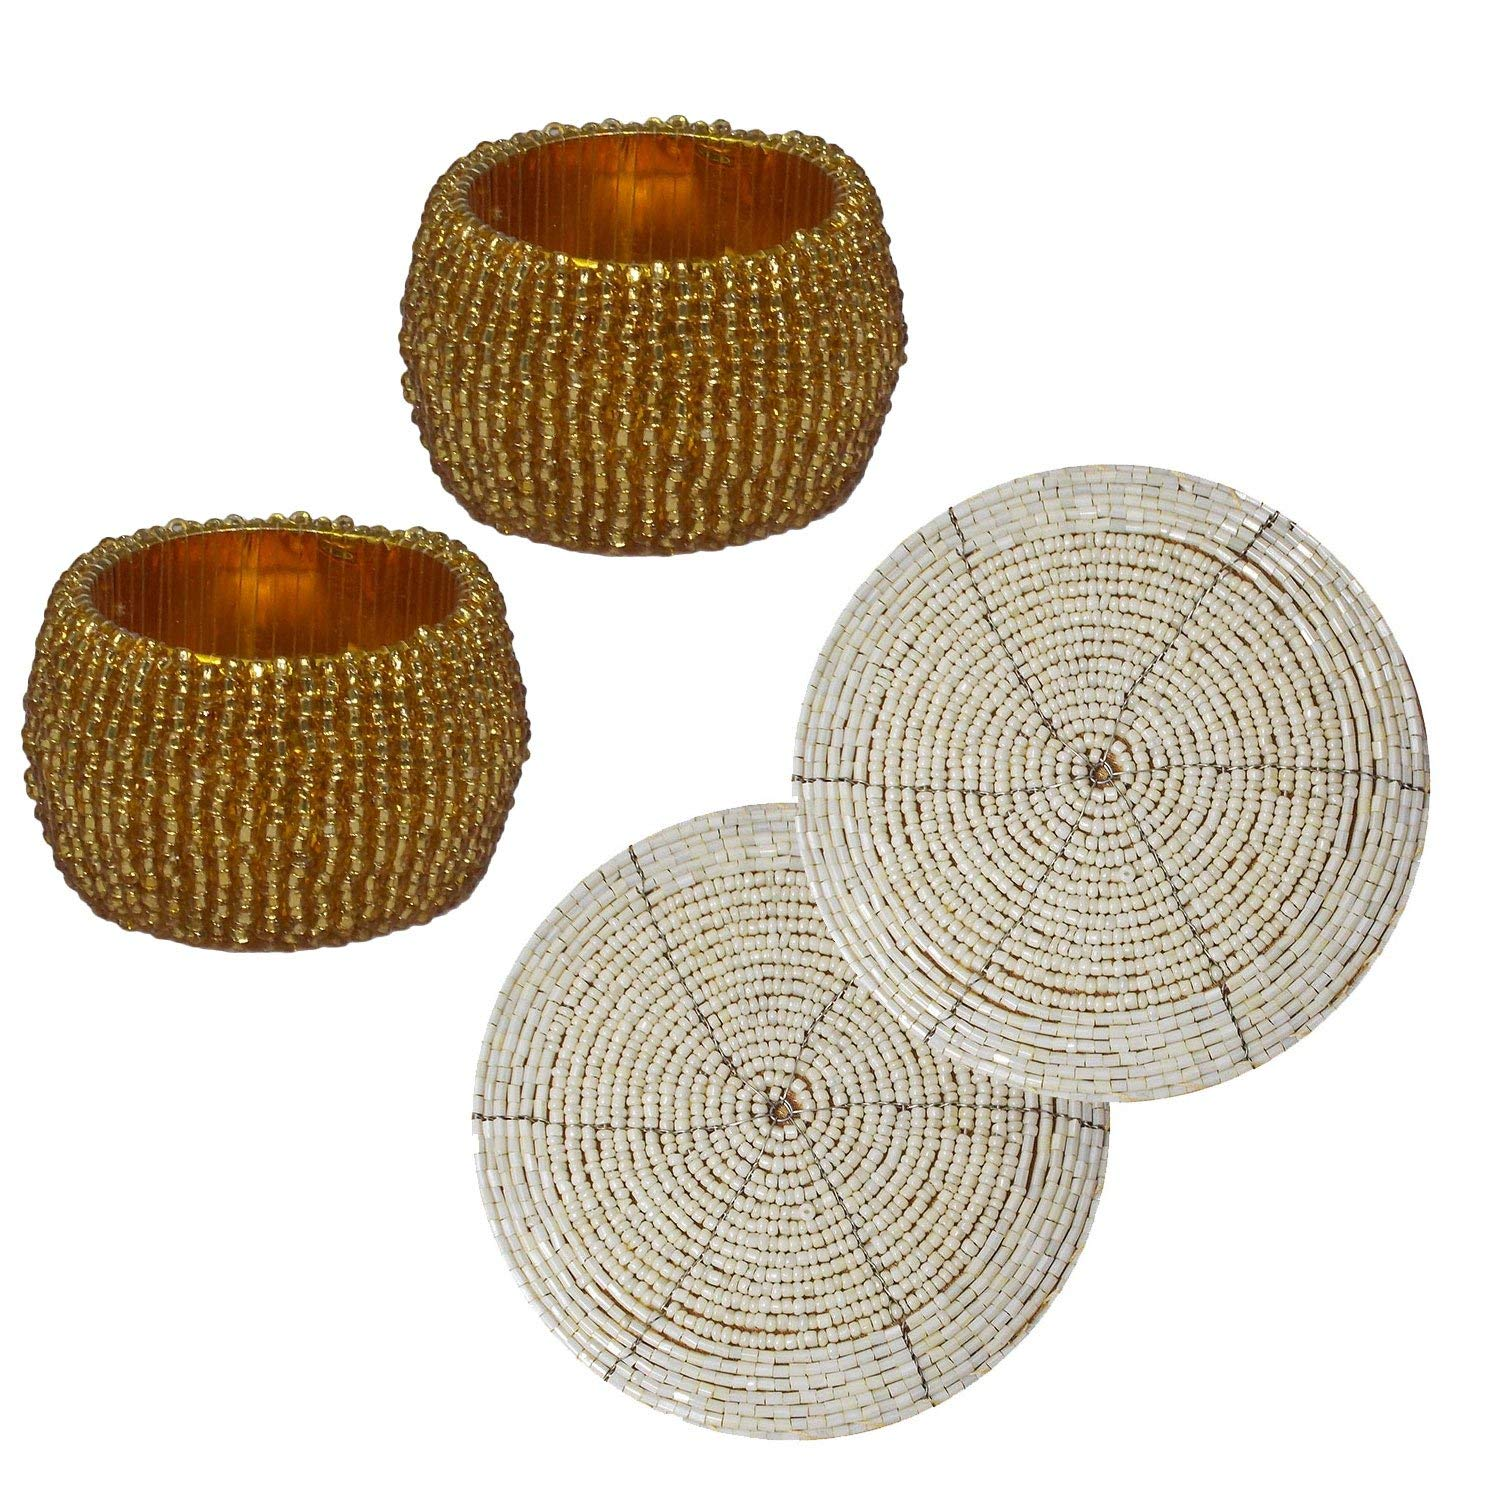 Set of 4- 2 Off-White Handmade Beaded Round Placemat Tea Cup Coaster and 2 Golden Napkin Ring Holder Wedding Decor